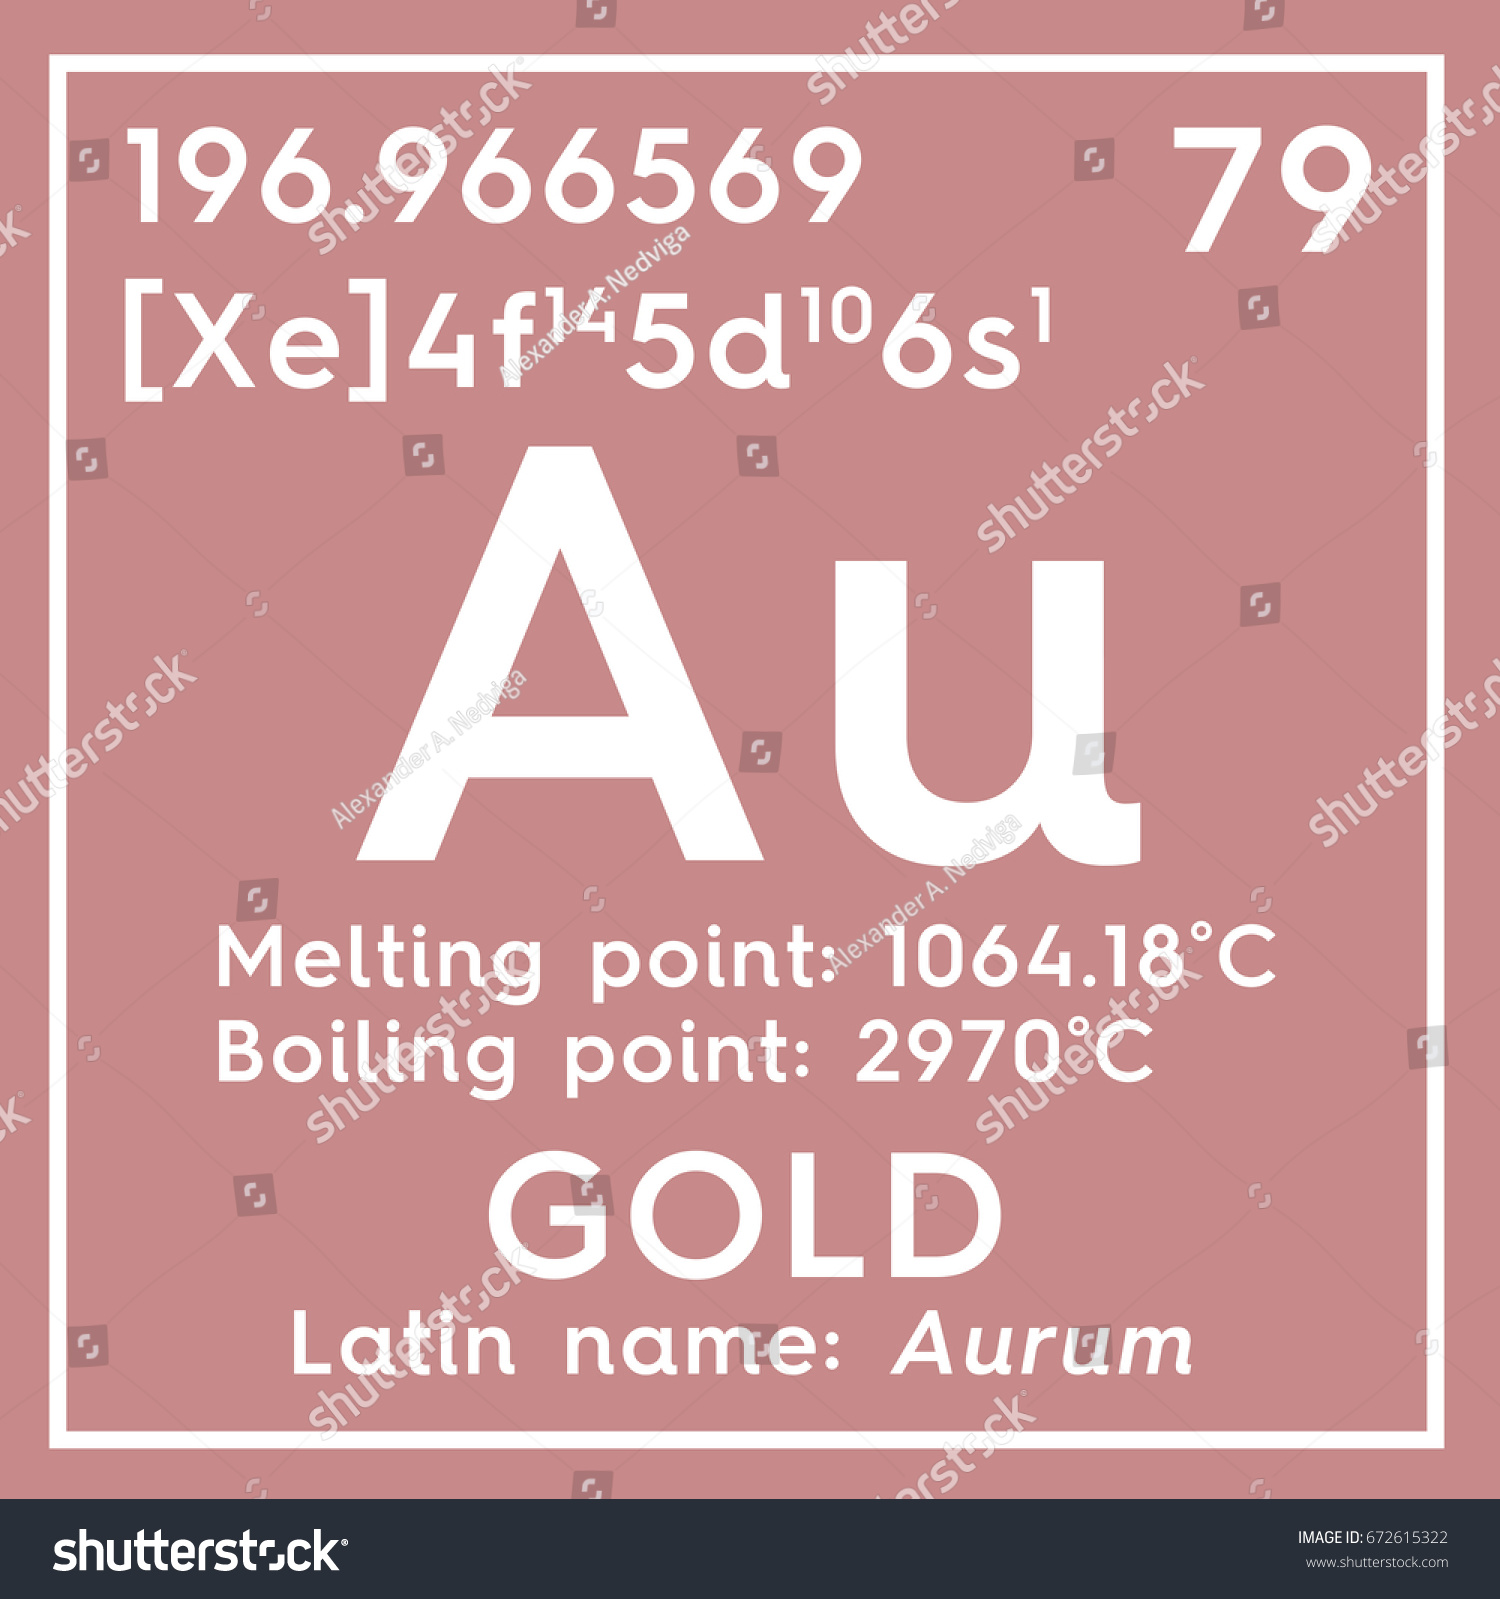 Gold Aurum Transition Metals Chemical Element Stock Illustration